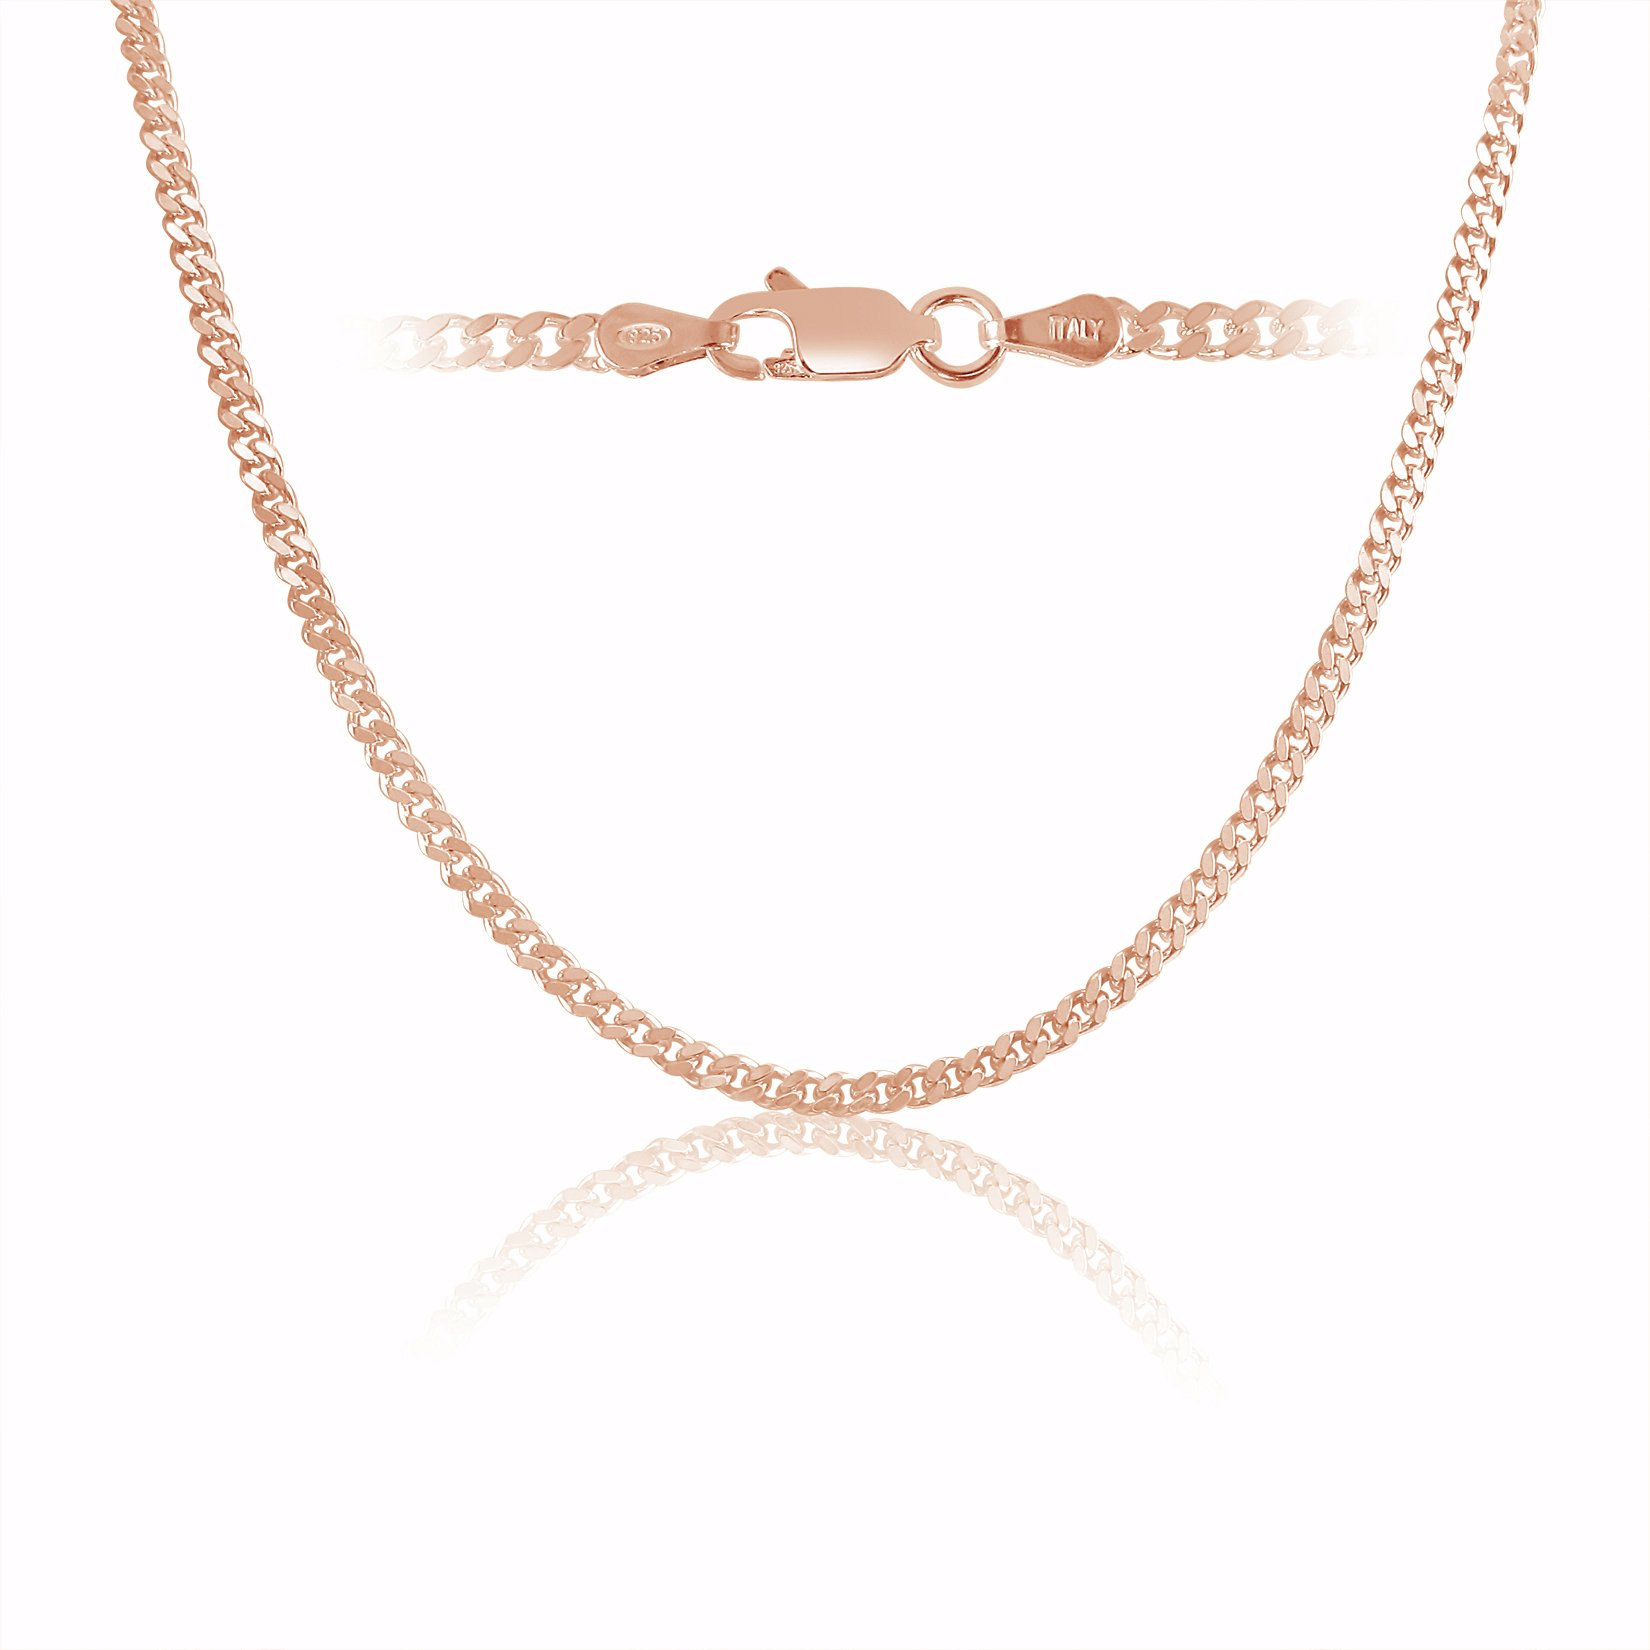 Rose Gold Plated Sterling Silver Curb Link Chain necklace 3mm Italy 18 inch